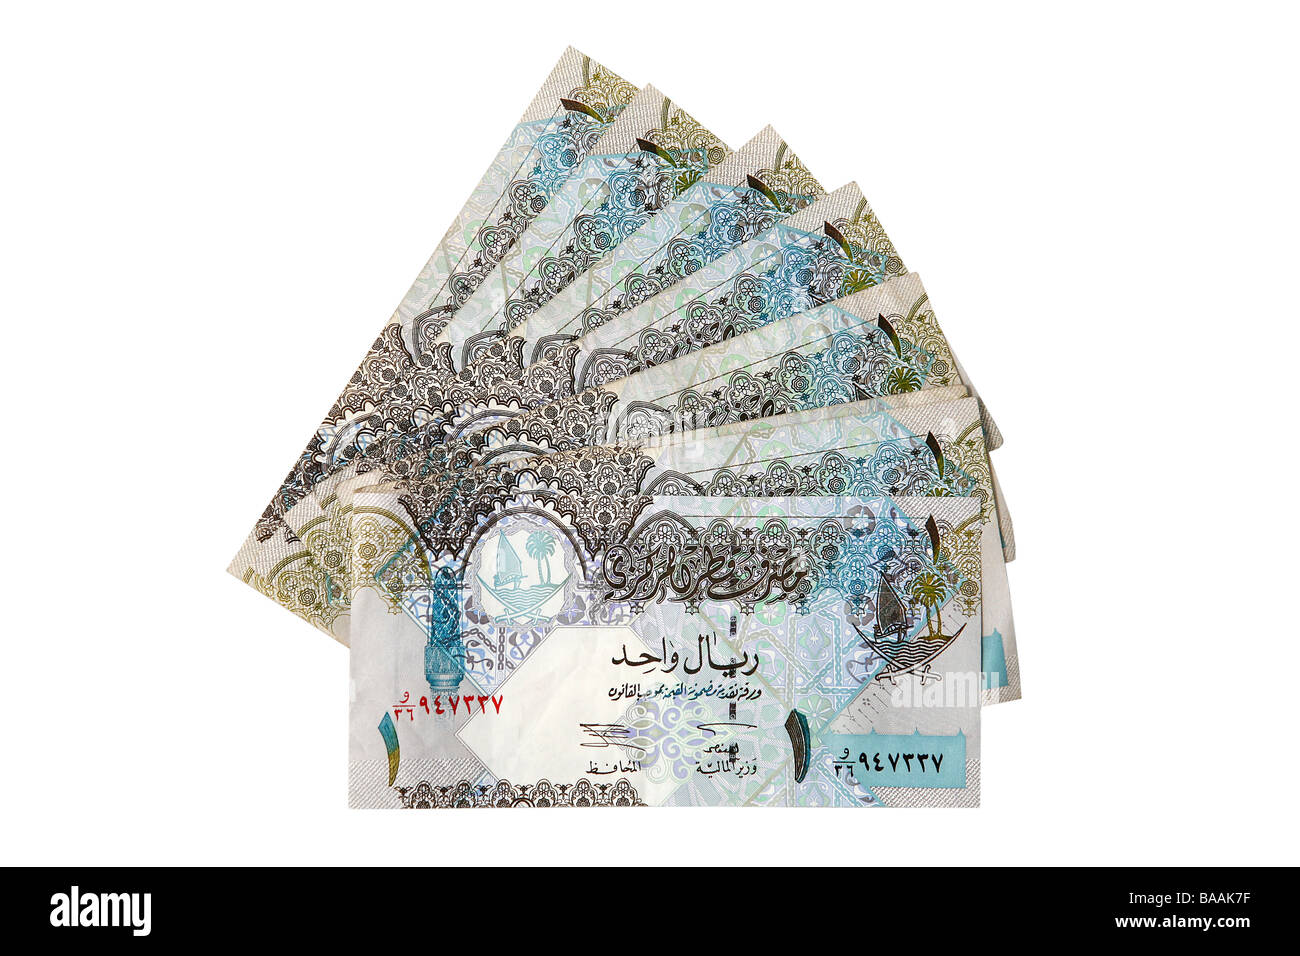 Quatari 1 Rial notes cut out on white background - Stock Image